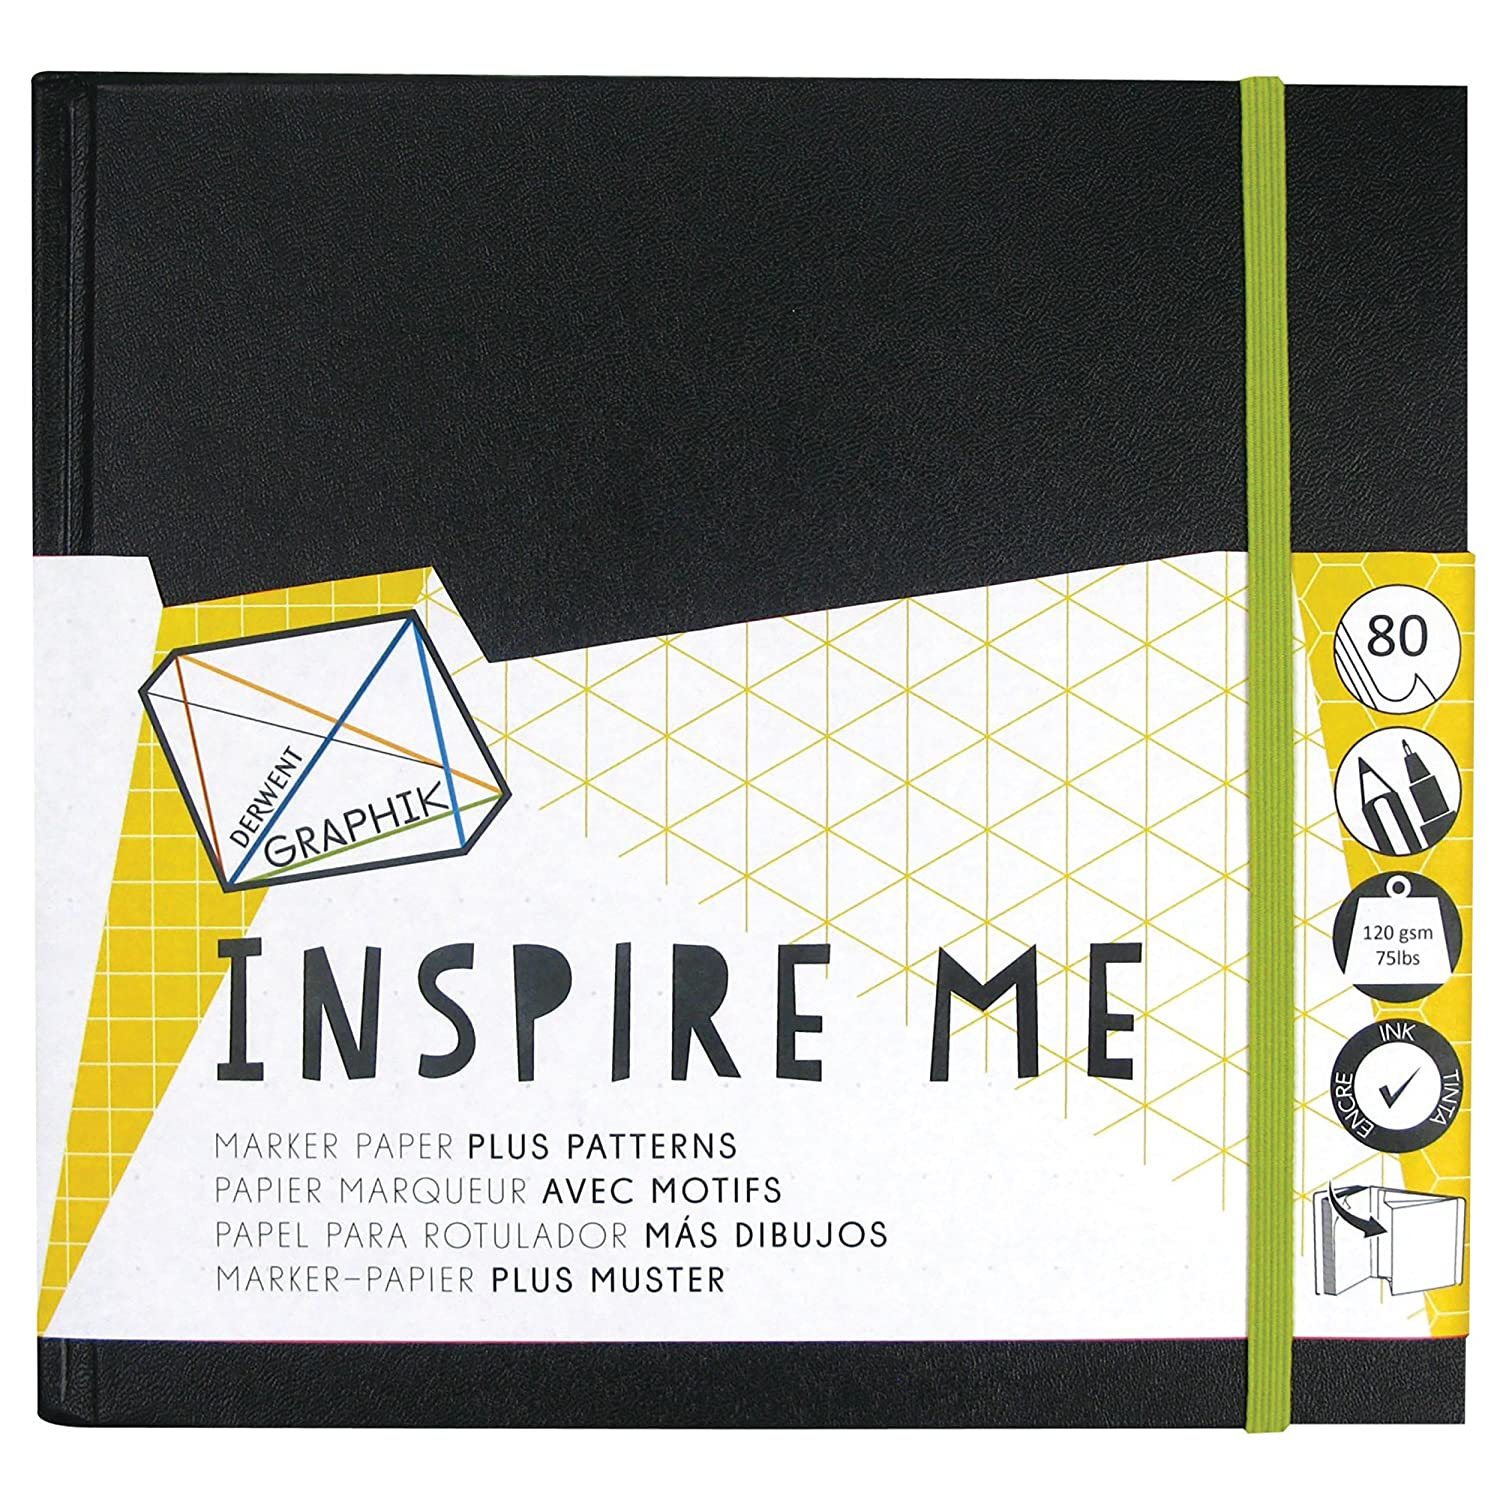 Derwent Small Sketch Book, Graphik Inspire Me, 80-Pages of Bleed Proof Patterned Paper (2302236) Reeves